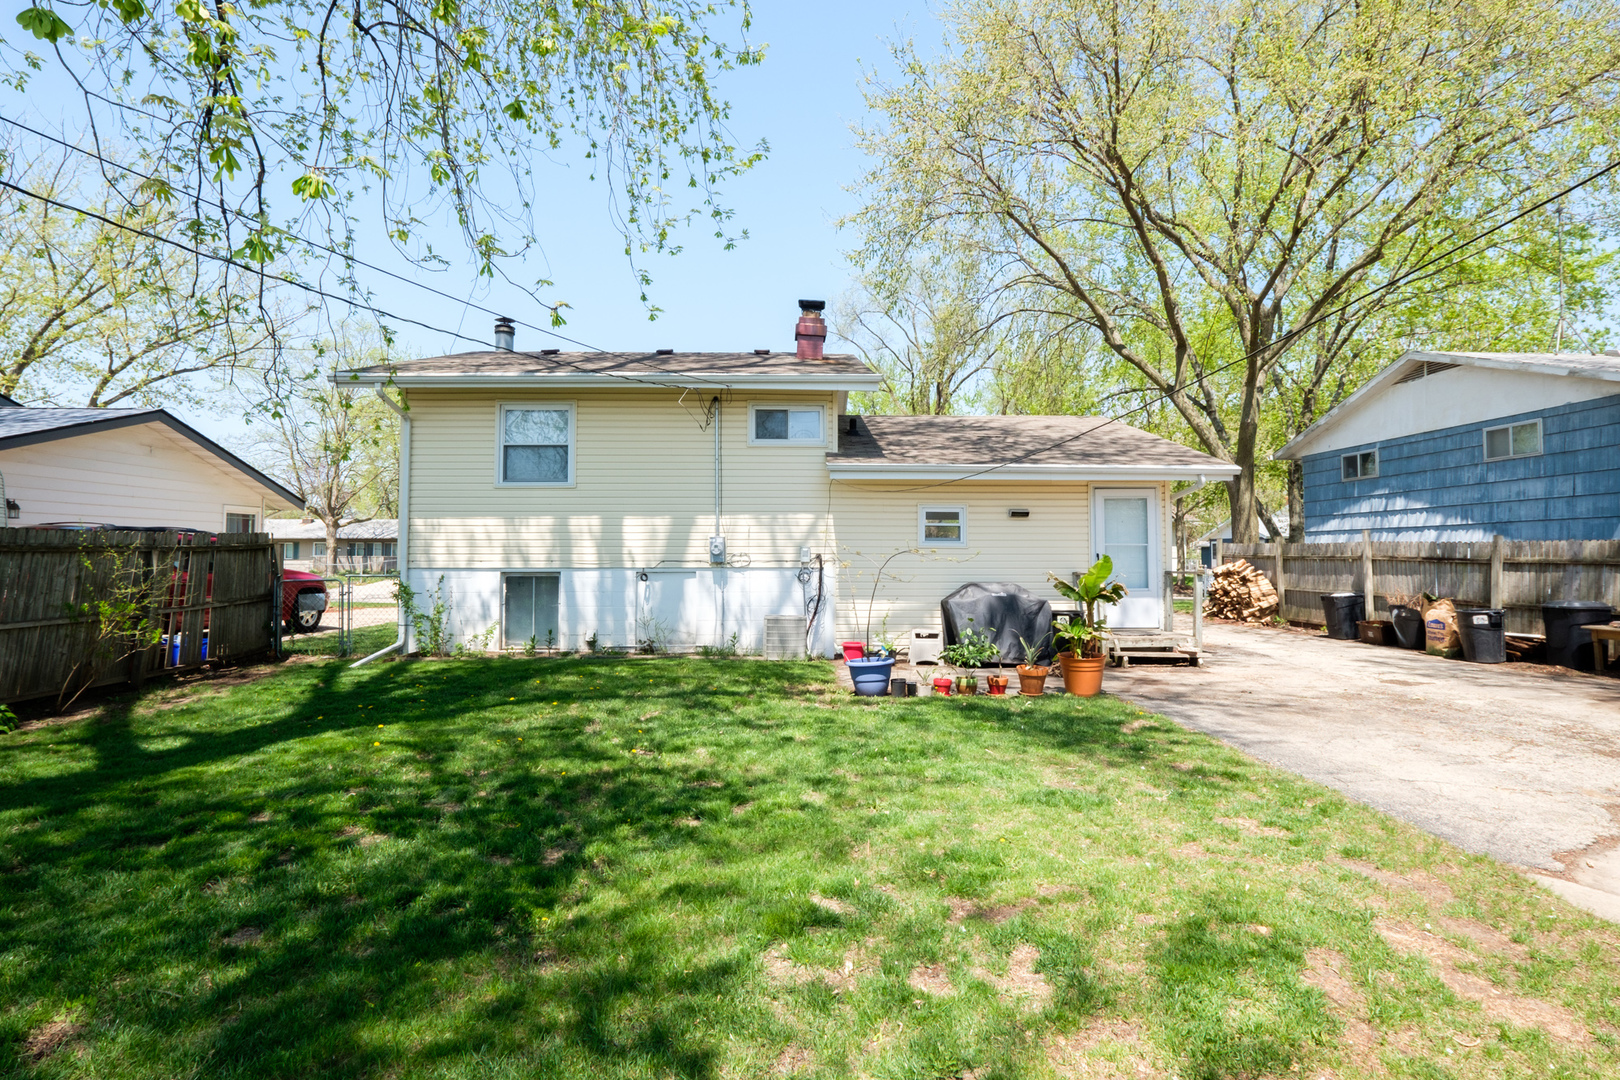 terrace park single men Zillow has 20 homes for sale in terrace park oh by analyzing information on thousands of single family homes for sale in terrace park.